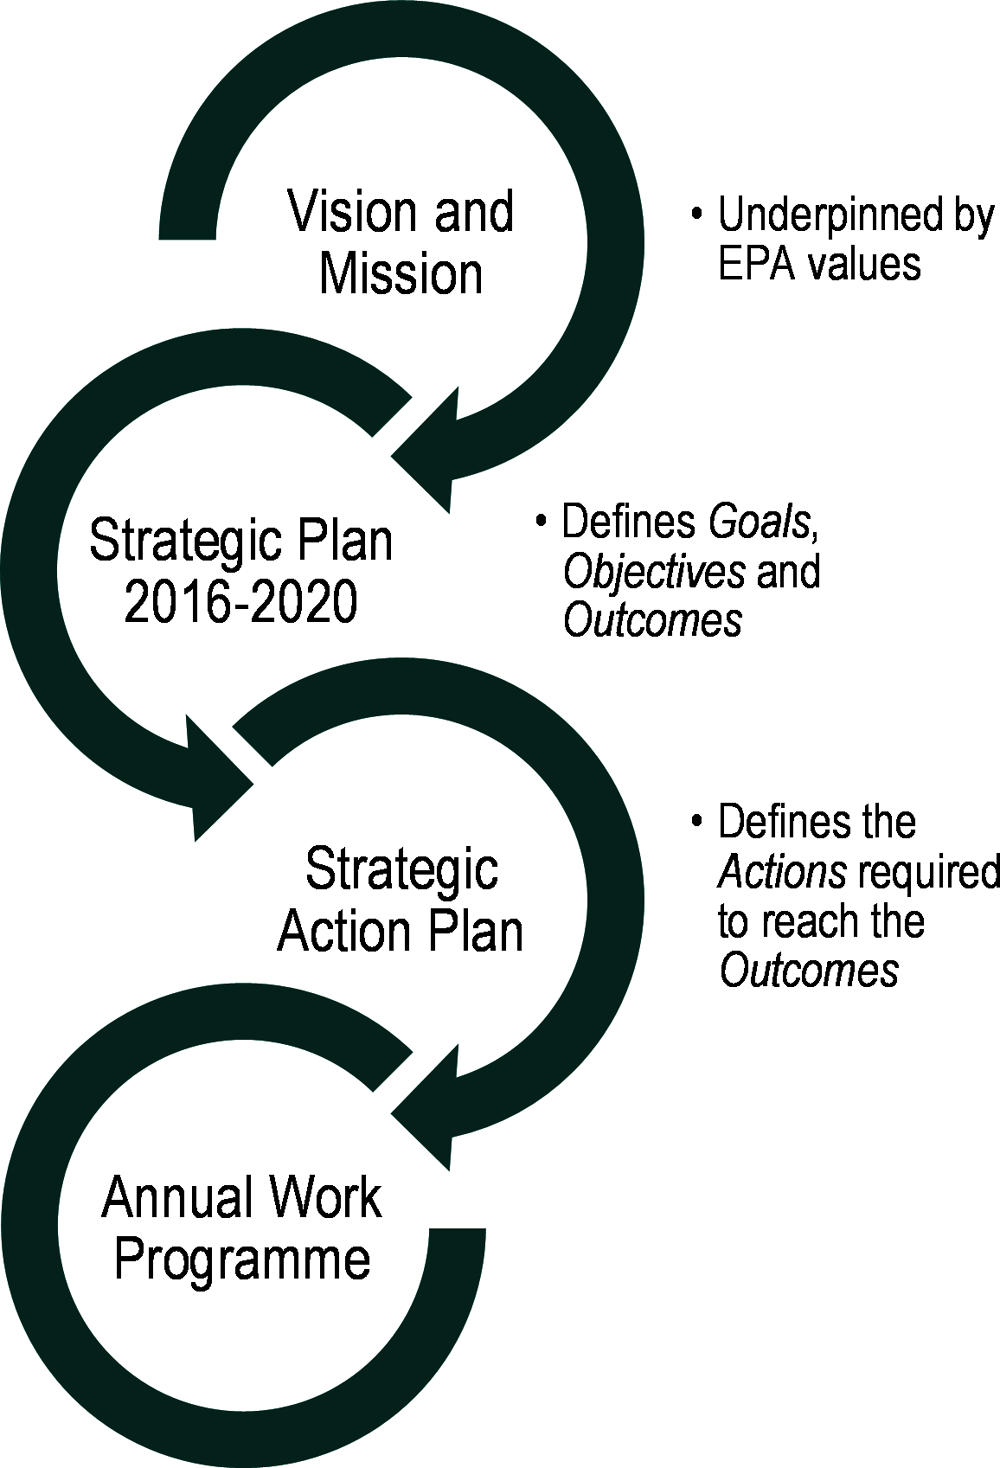 Figure ‎2.2. Linking EPA's vision and mission with its annual work programme